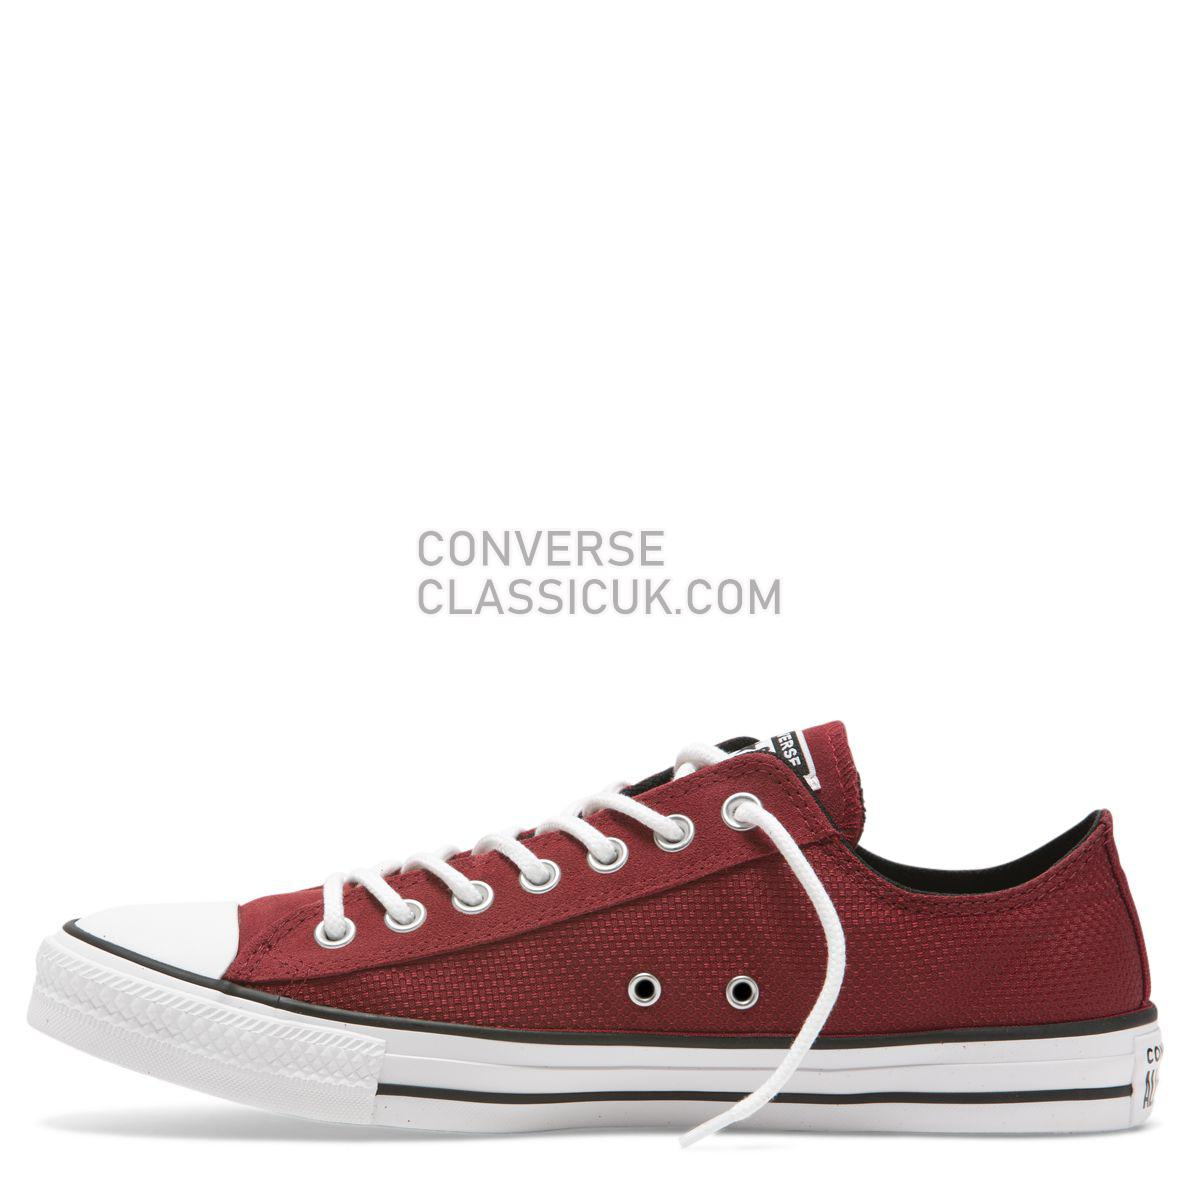 Converse Chuck Taylor All Star Utility Low Top Back Alley Brick Mens Womens Unisex 165336 Back Alley Brick/White/Black Shoes